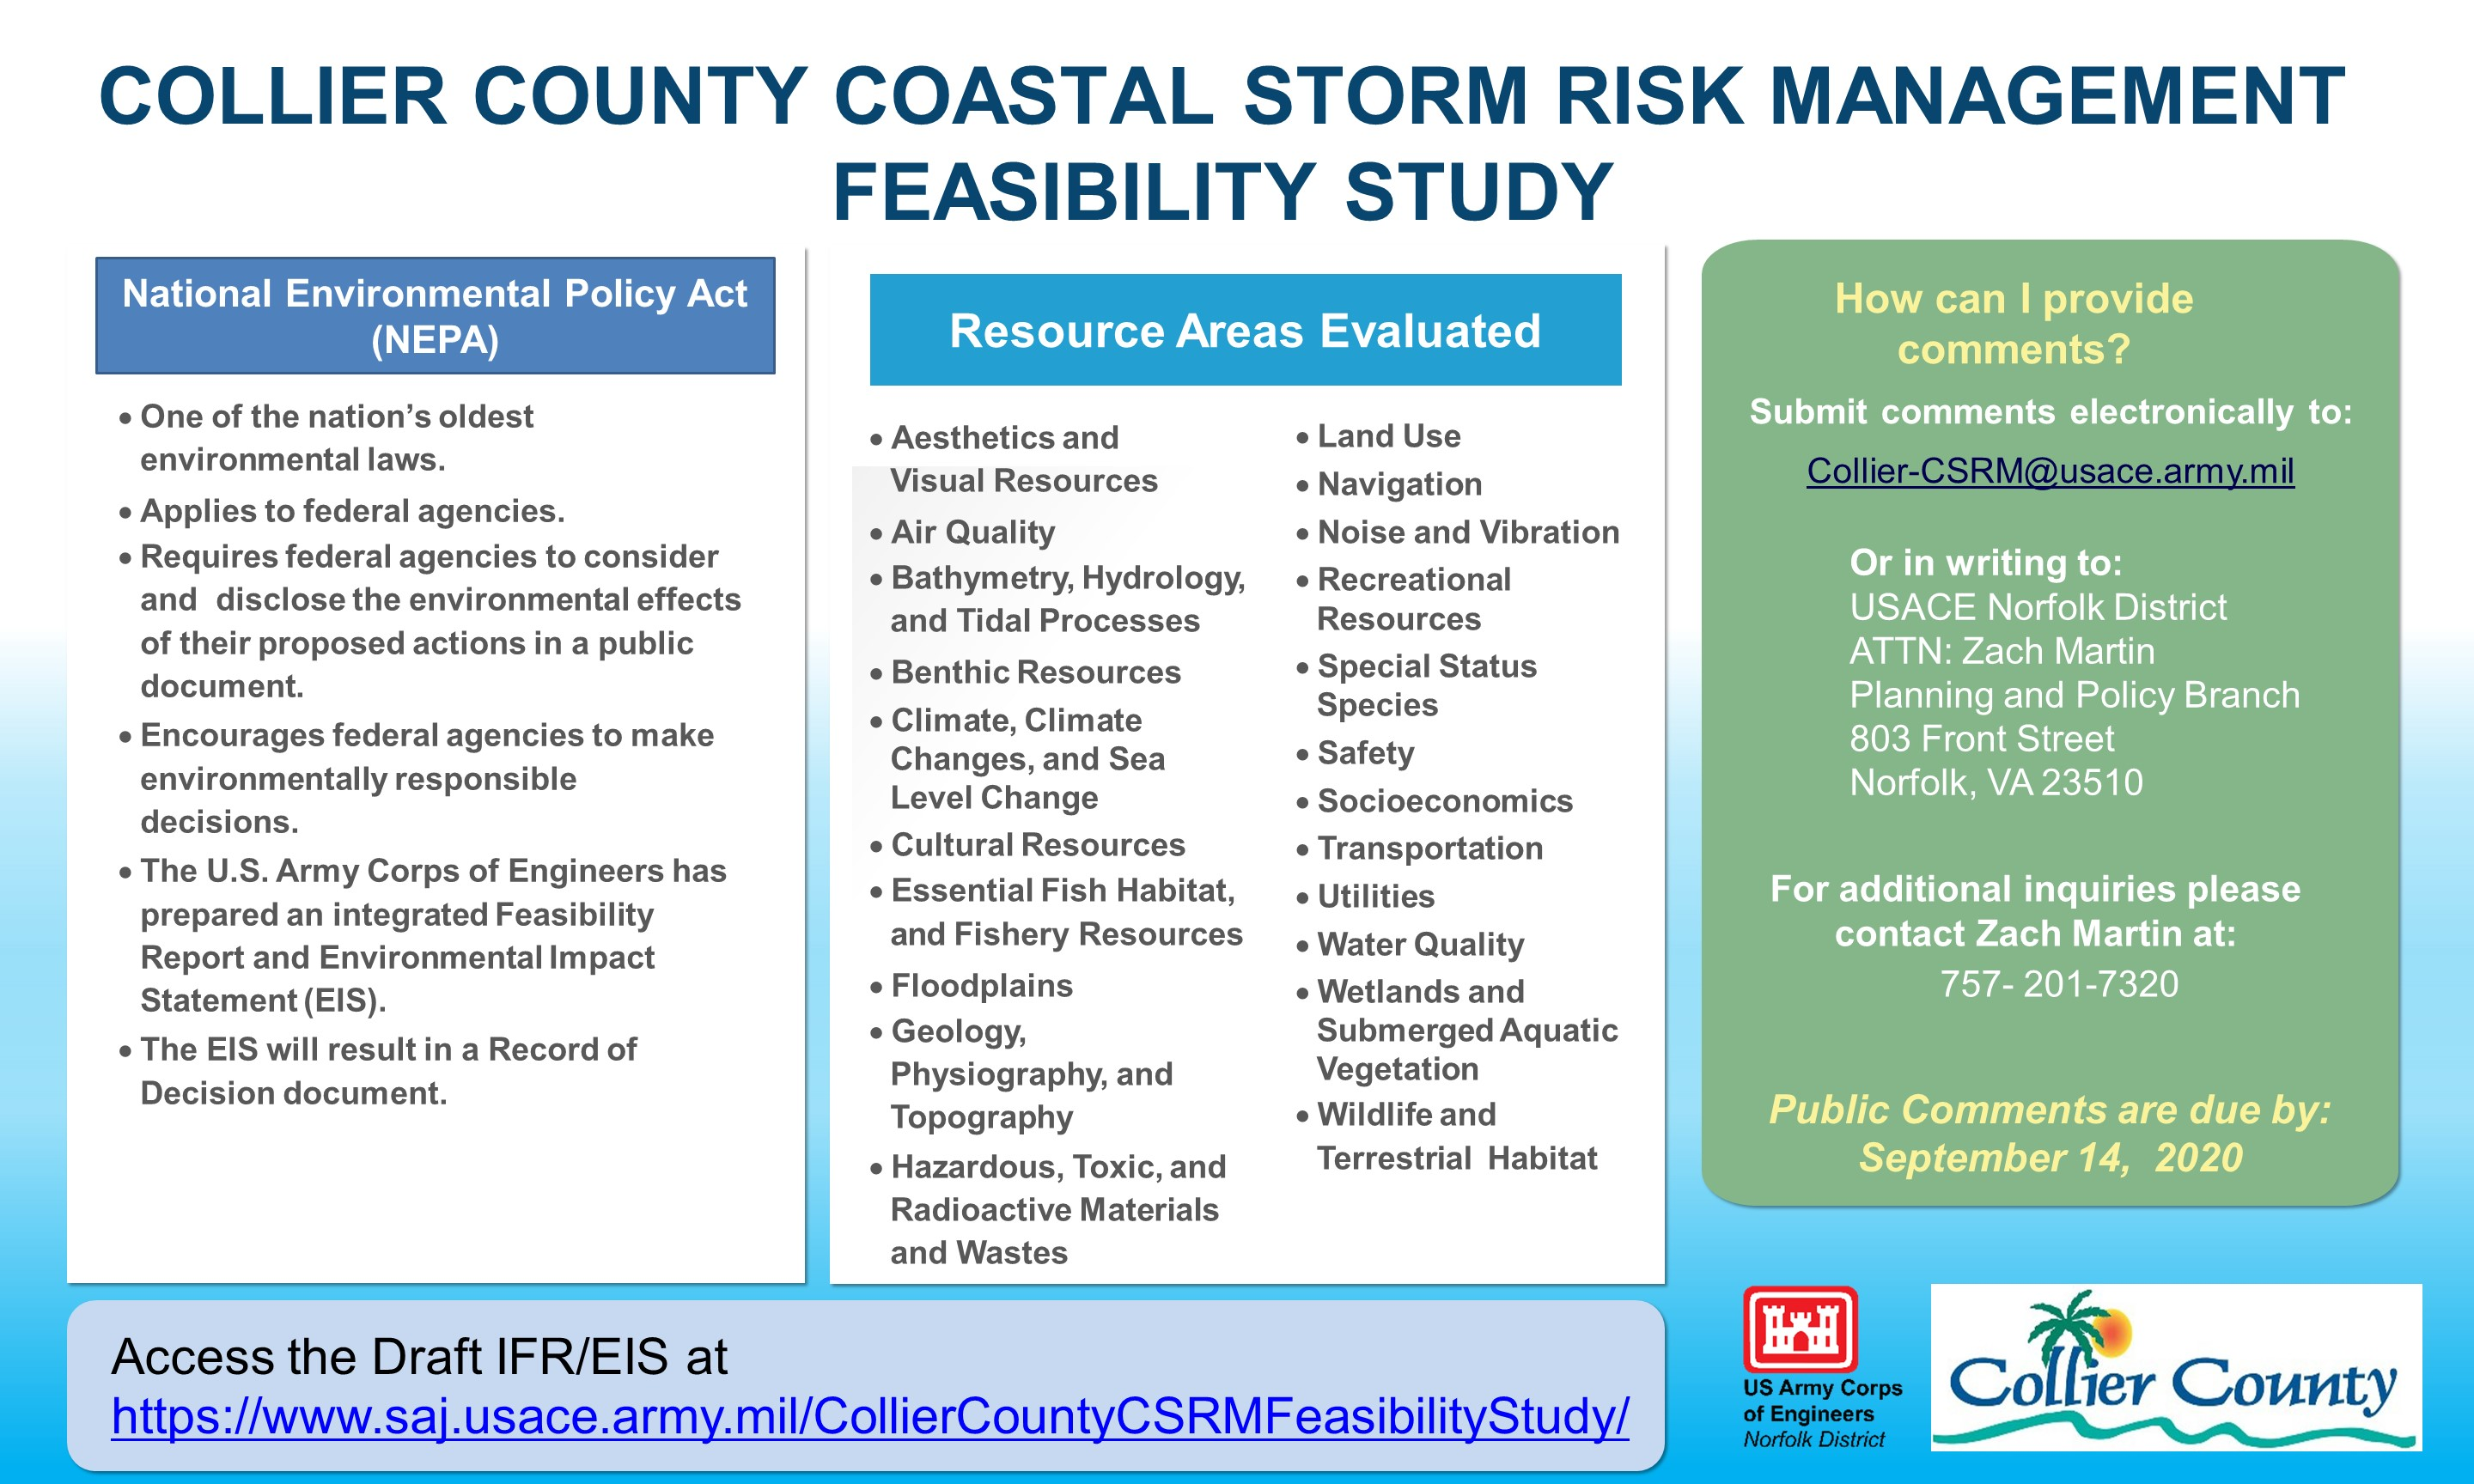 Collier County Coastal Storm Risk Management Feasibility Study Main Board